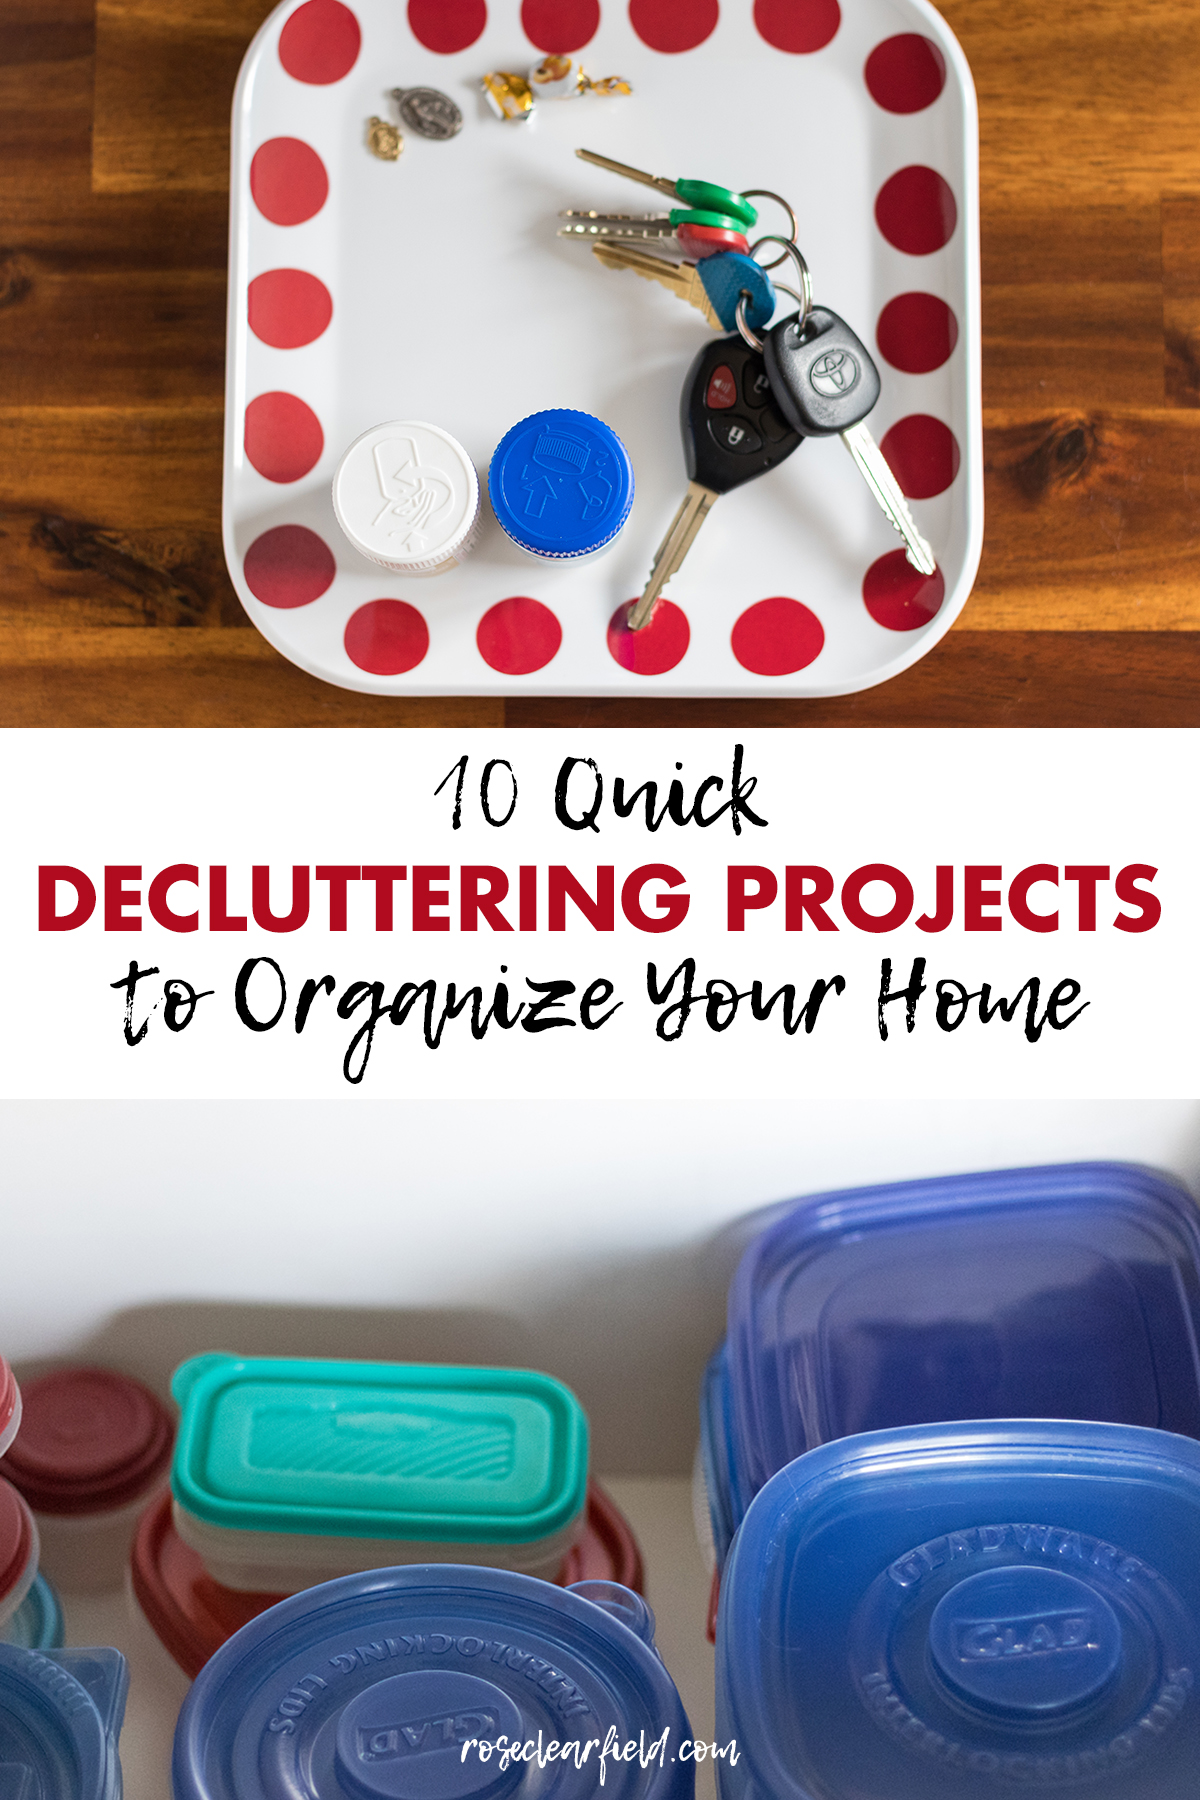 10 Quick Decluttering Projects to Organize Your Home